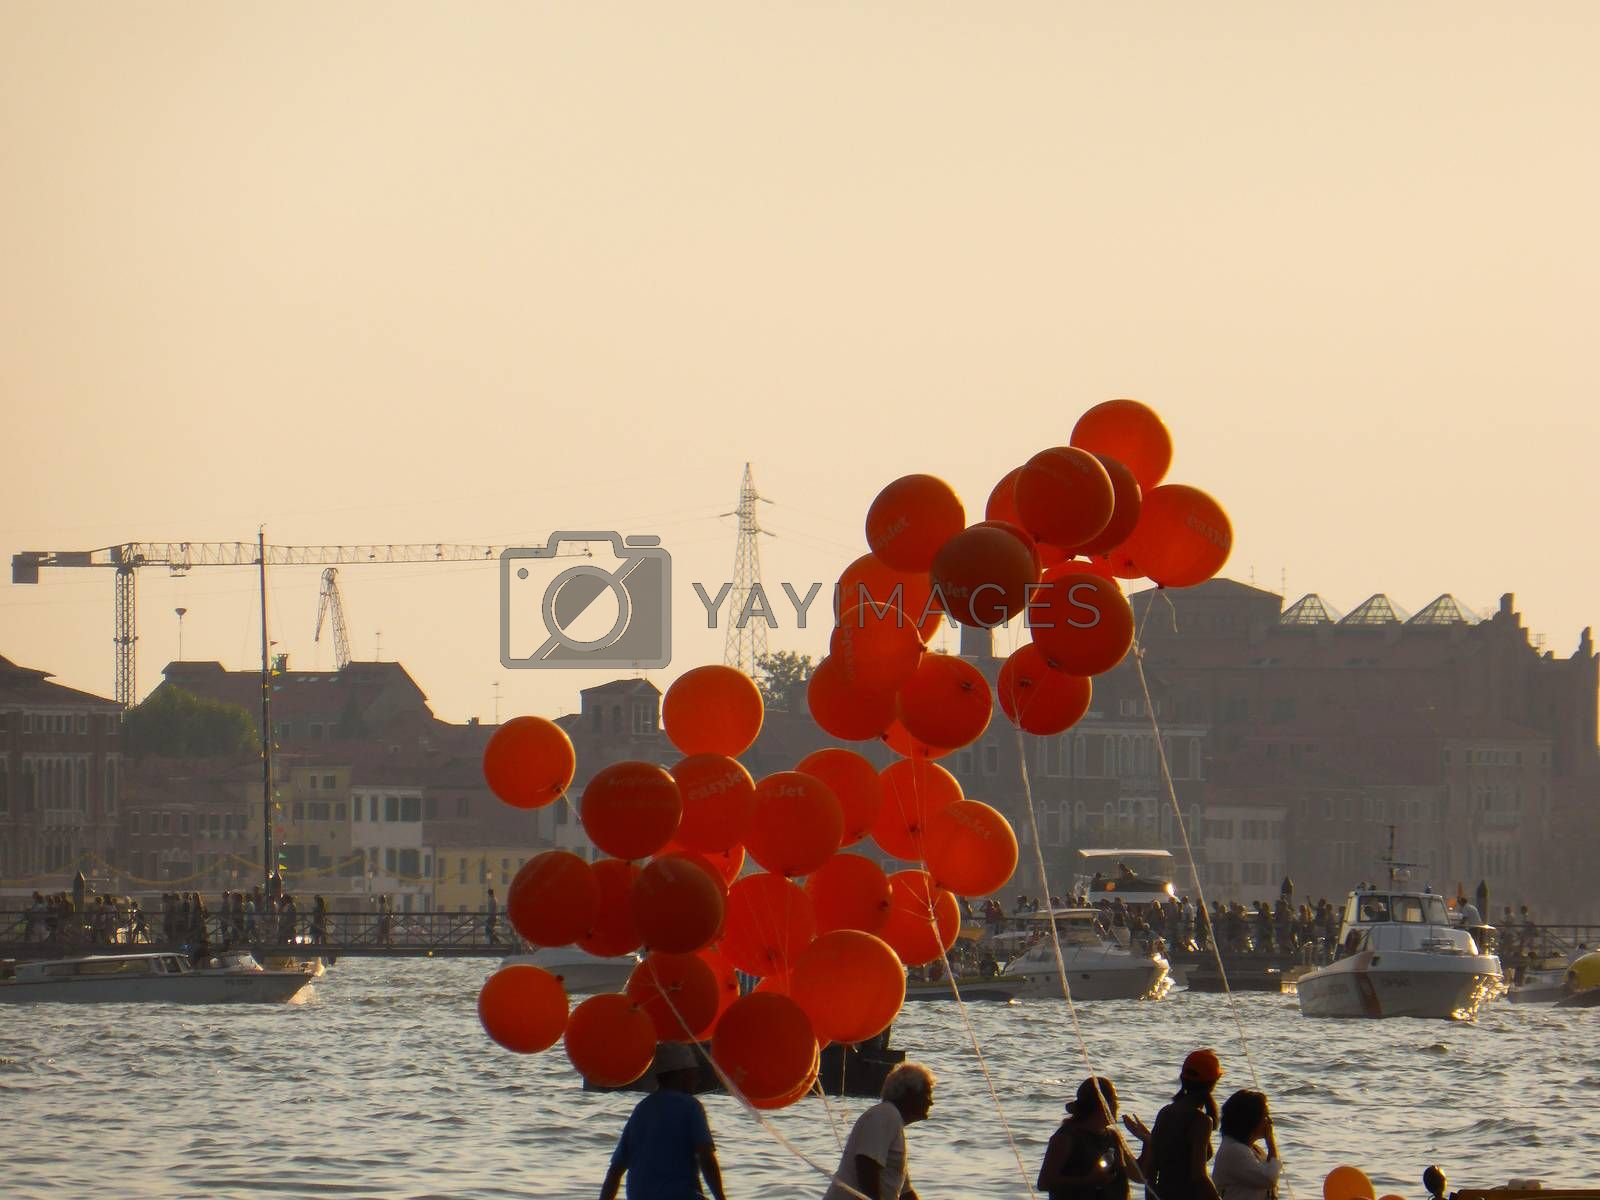 Venice, Italy ��� July, 20: the Festival of the Redeemer in Venice on July 20, 2013. From 1577, the Venetians��� favourite event is a thanksgiving to Jesus Christ for the end of the Plague in 1577. The fireworks show is the best in Europe